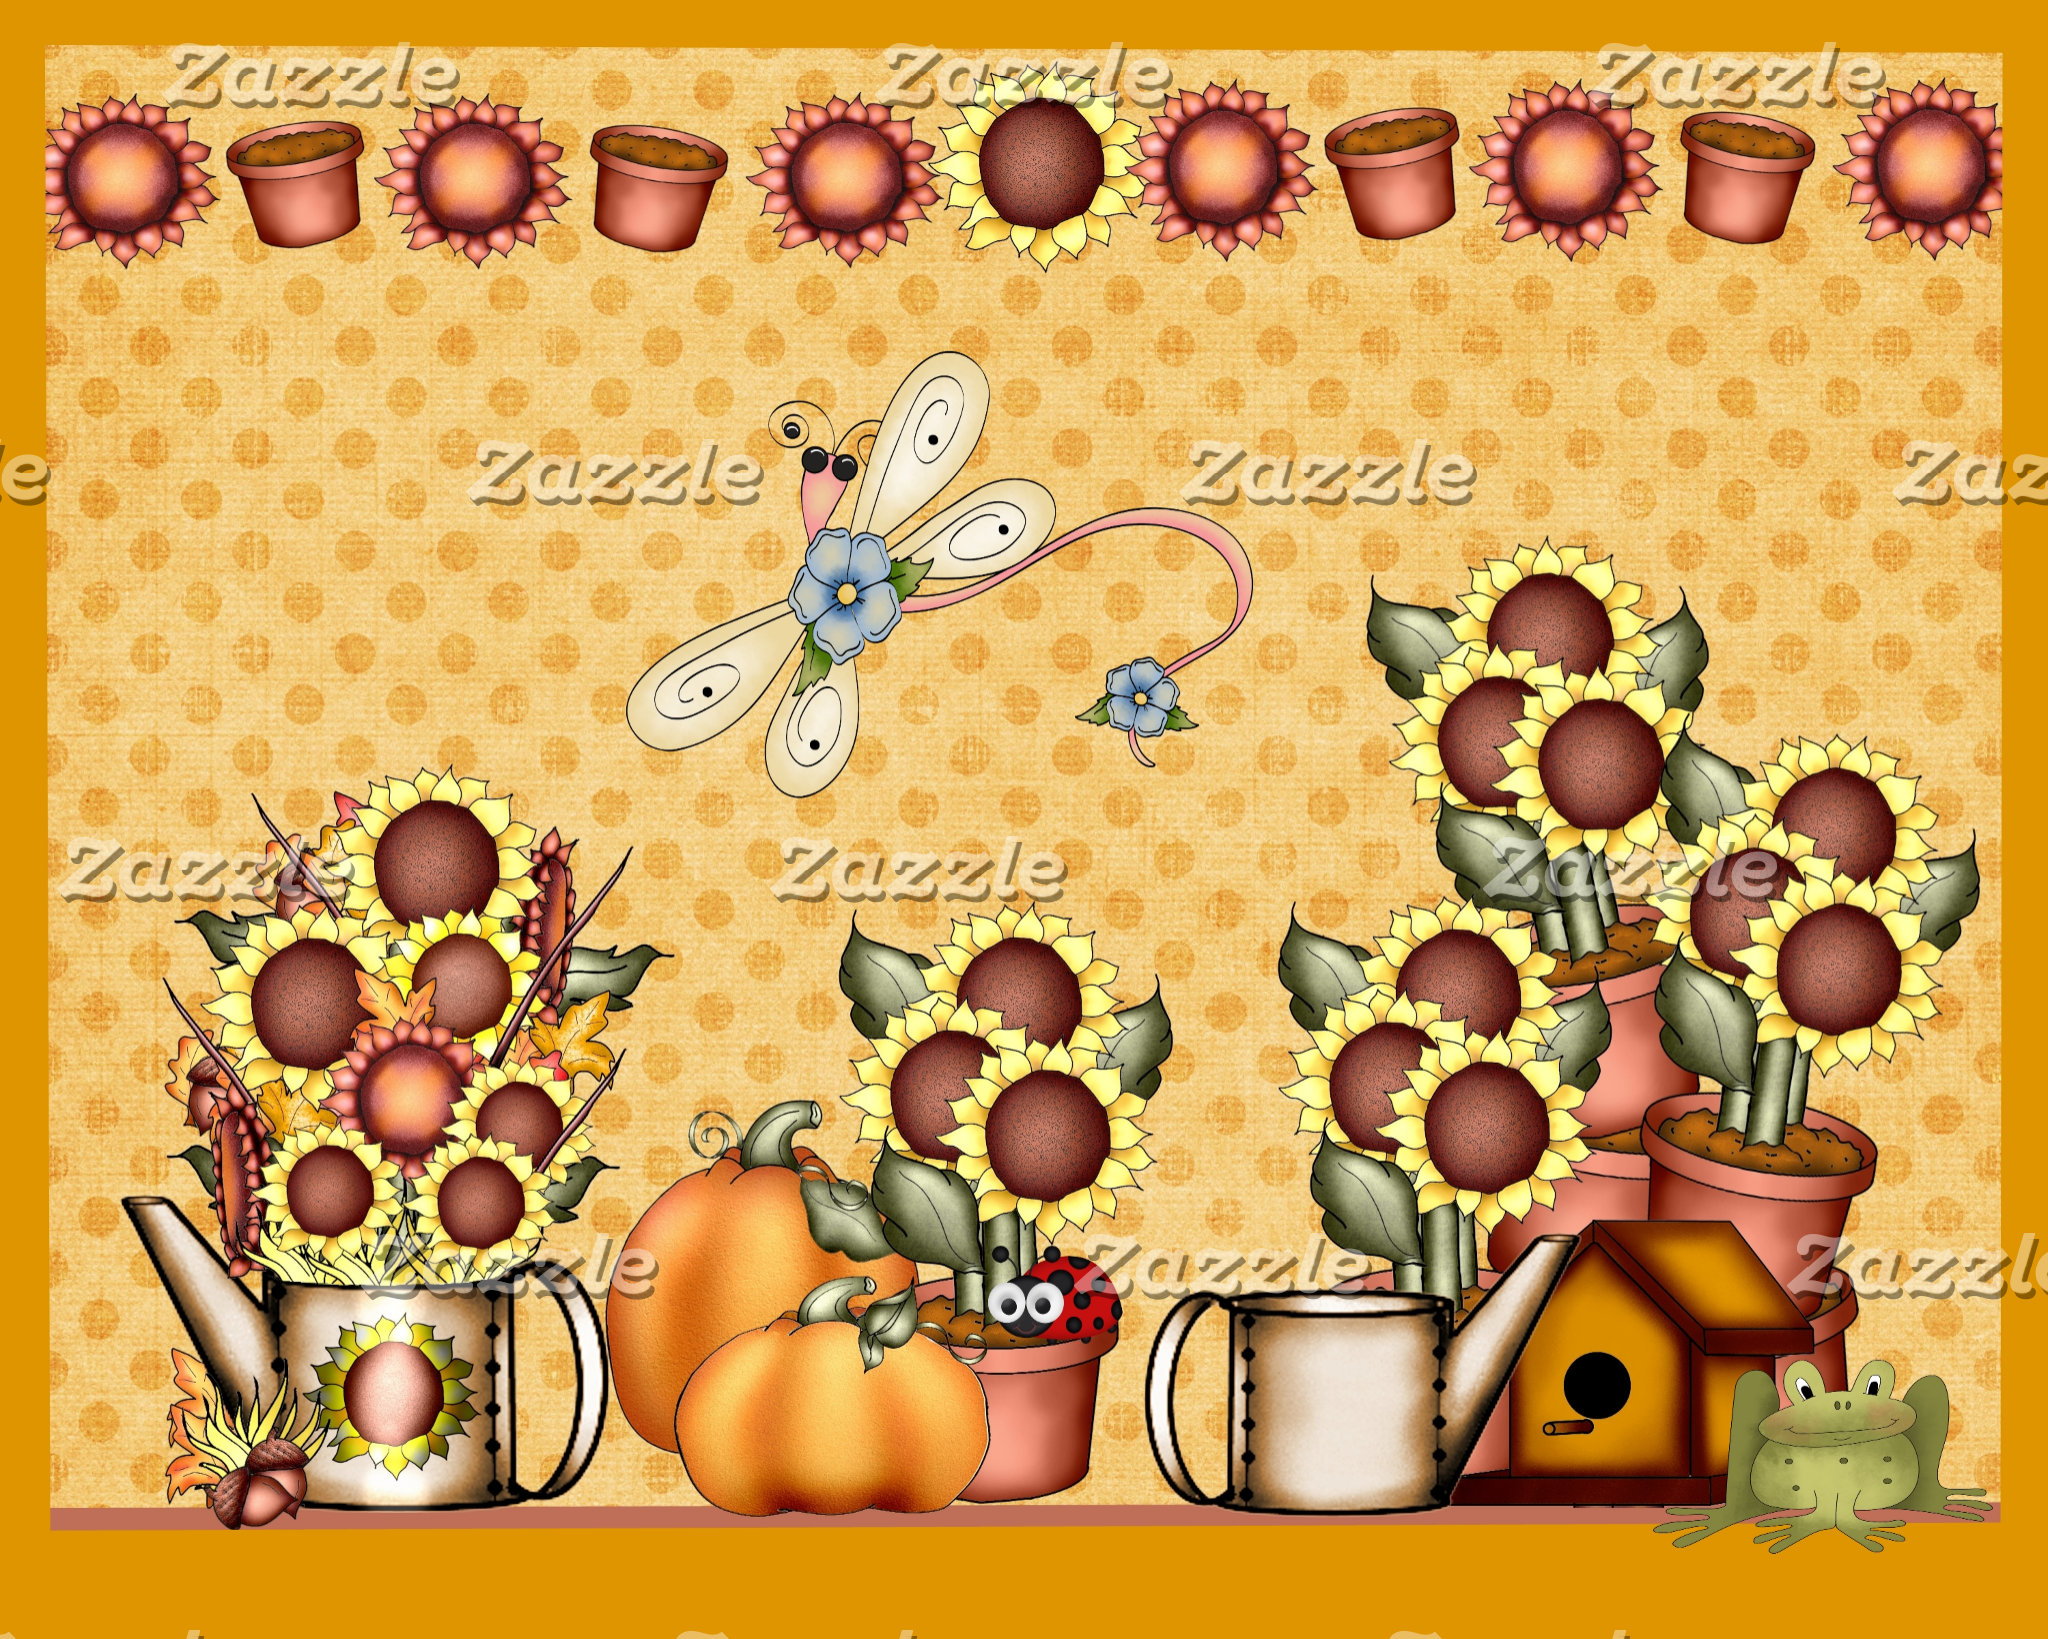 Autumn and Fall Harvest Themes